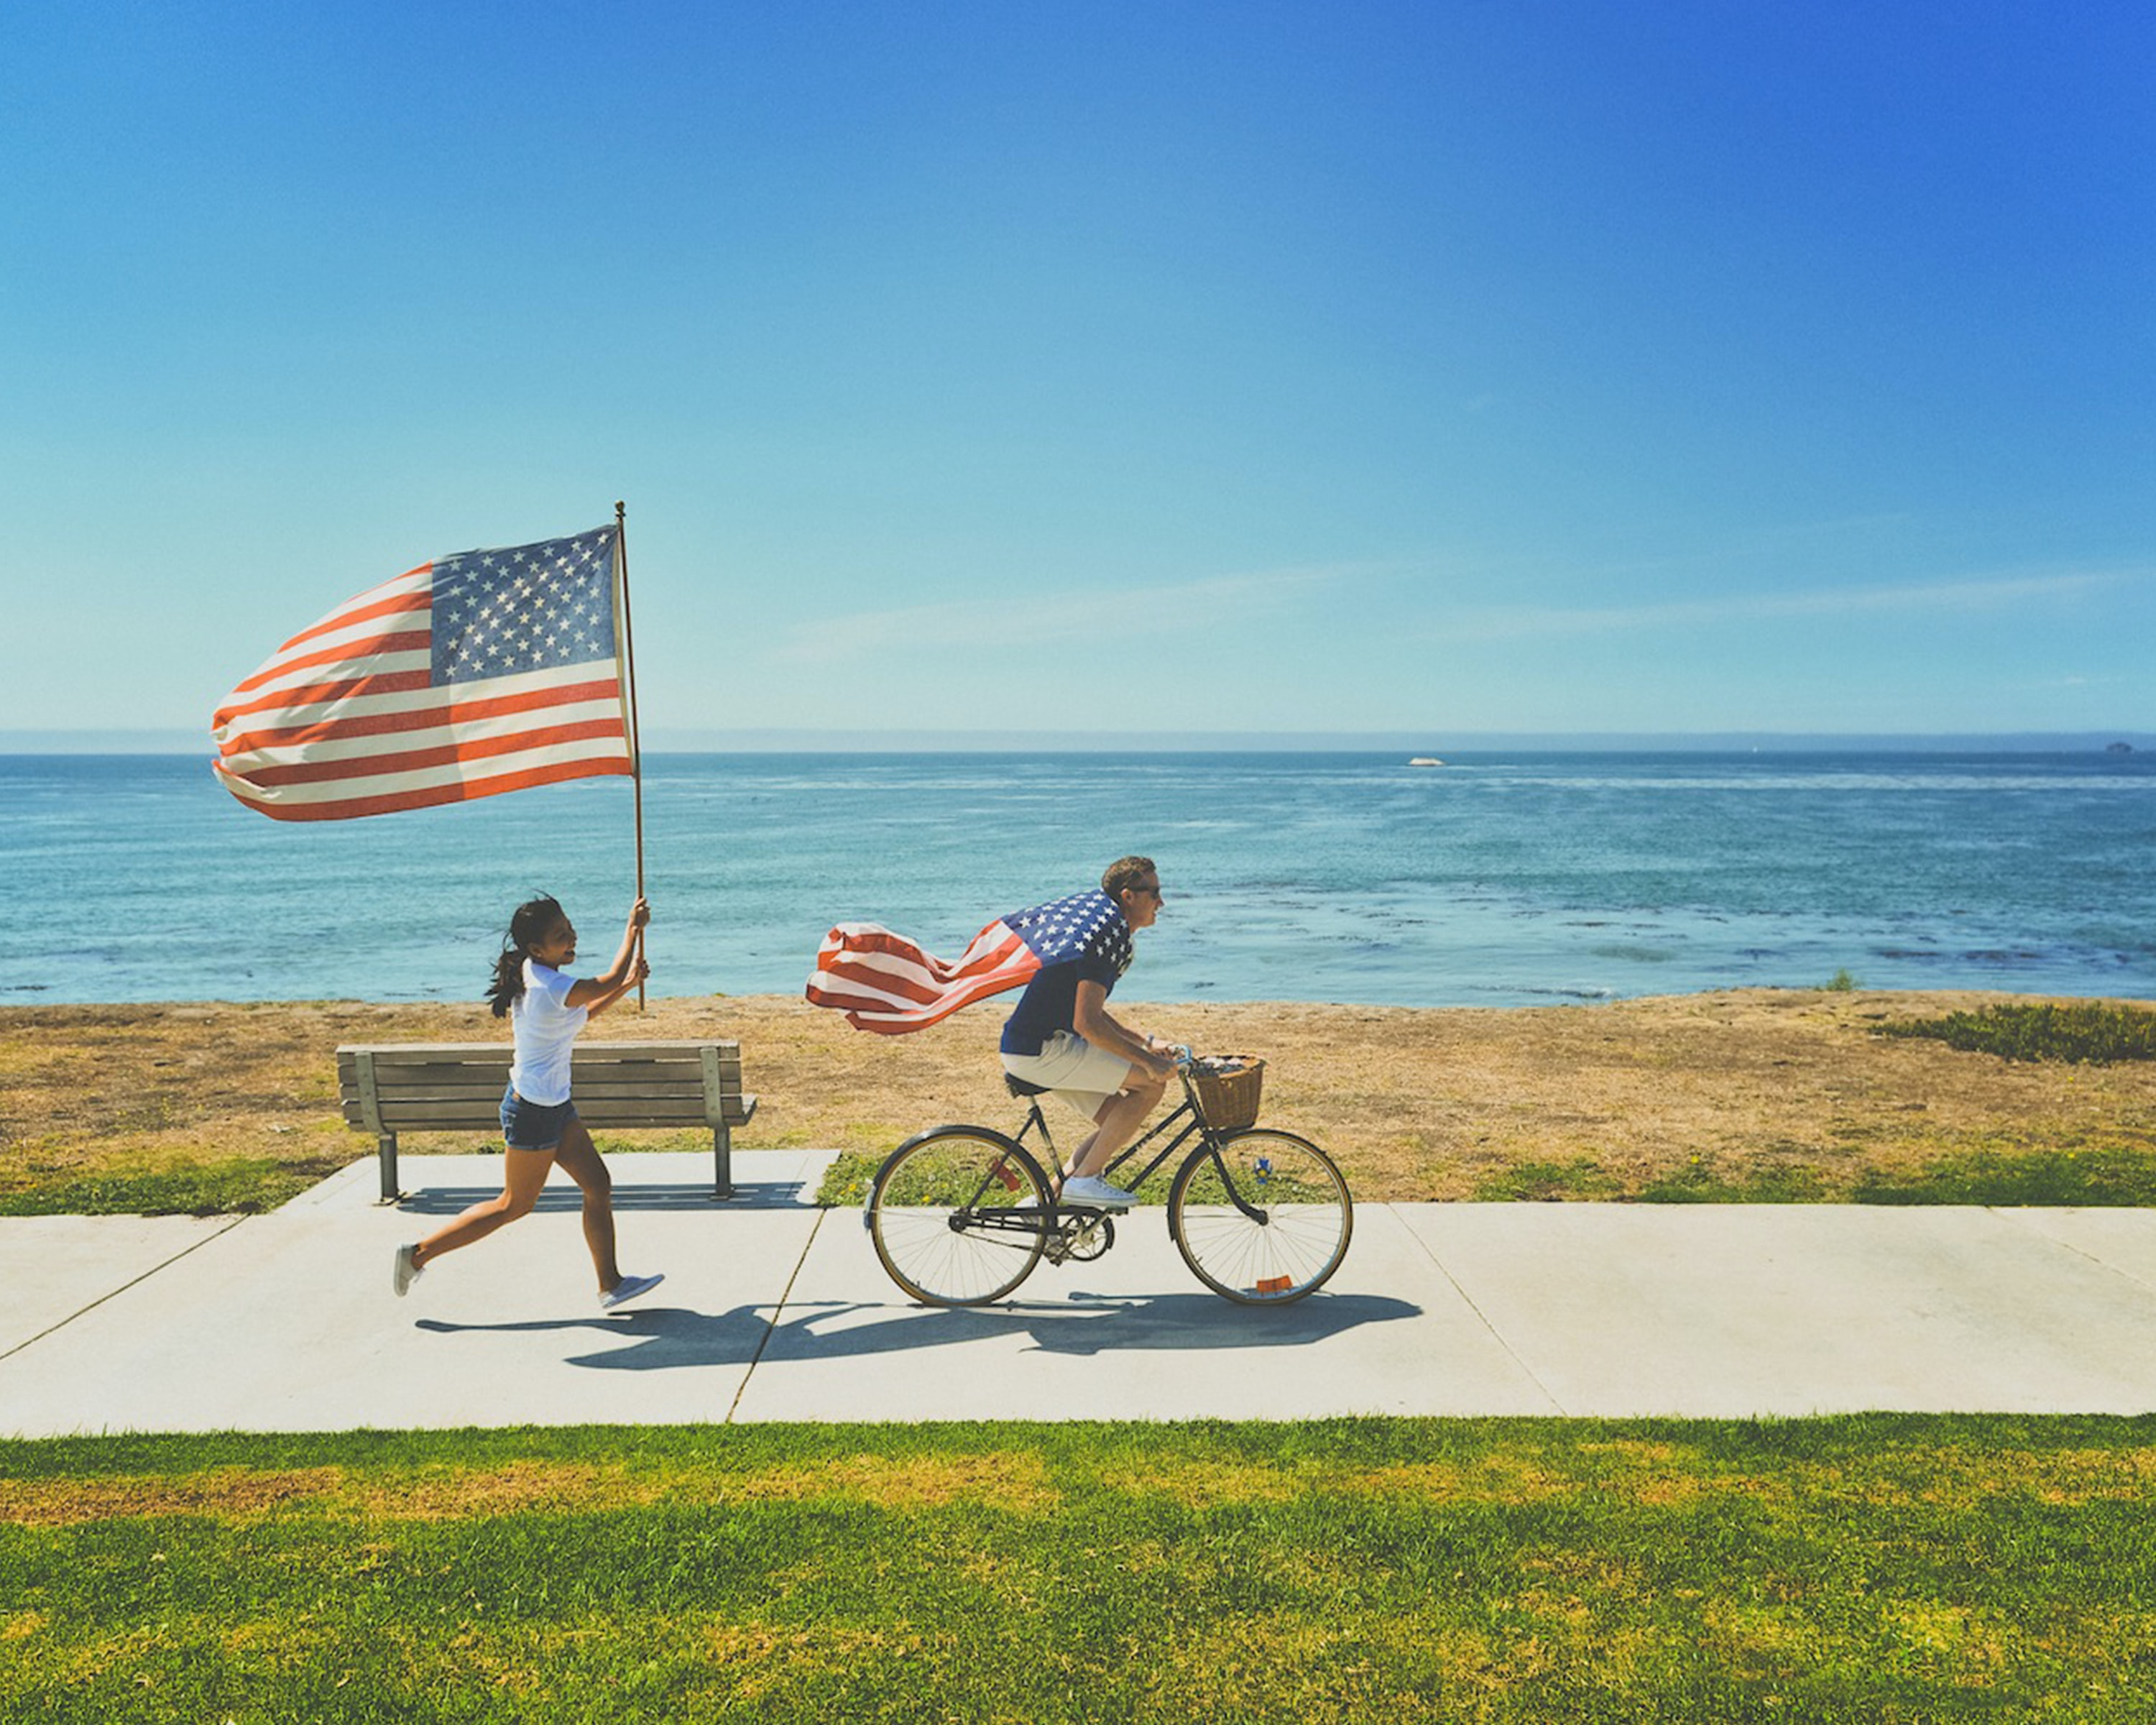 man riding bike and woman running holding flag of USA